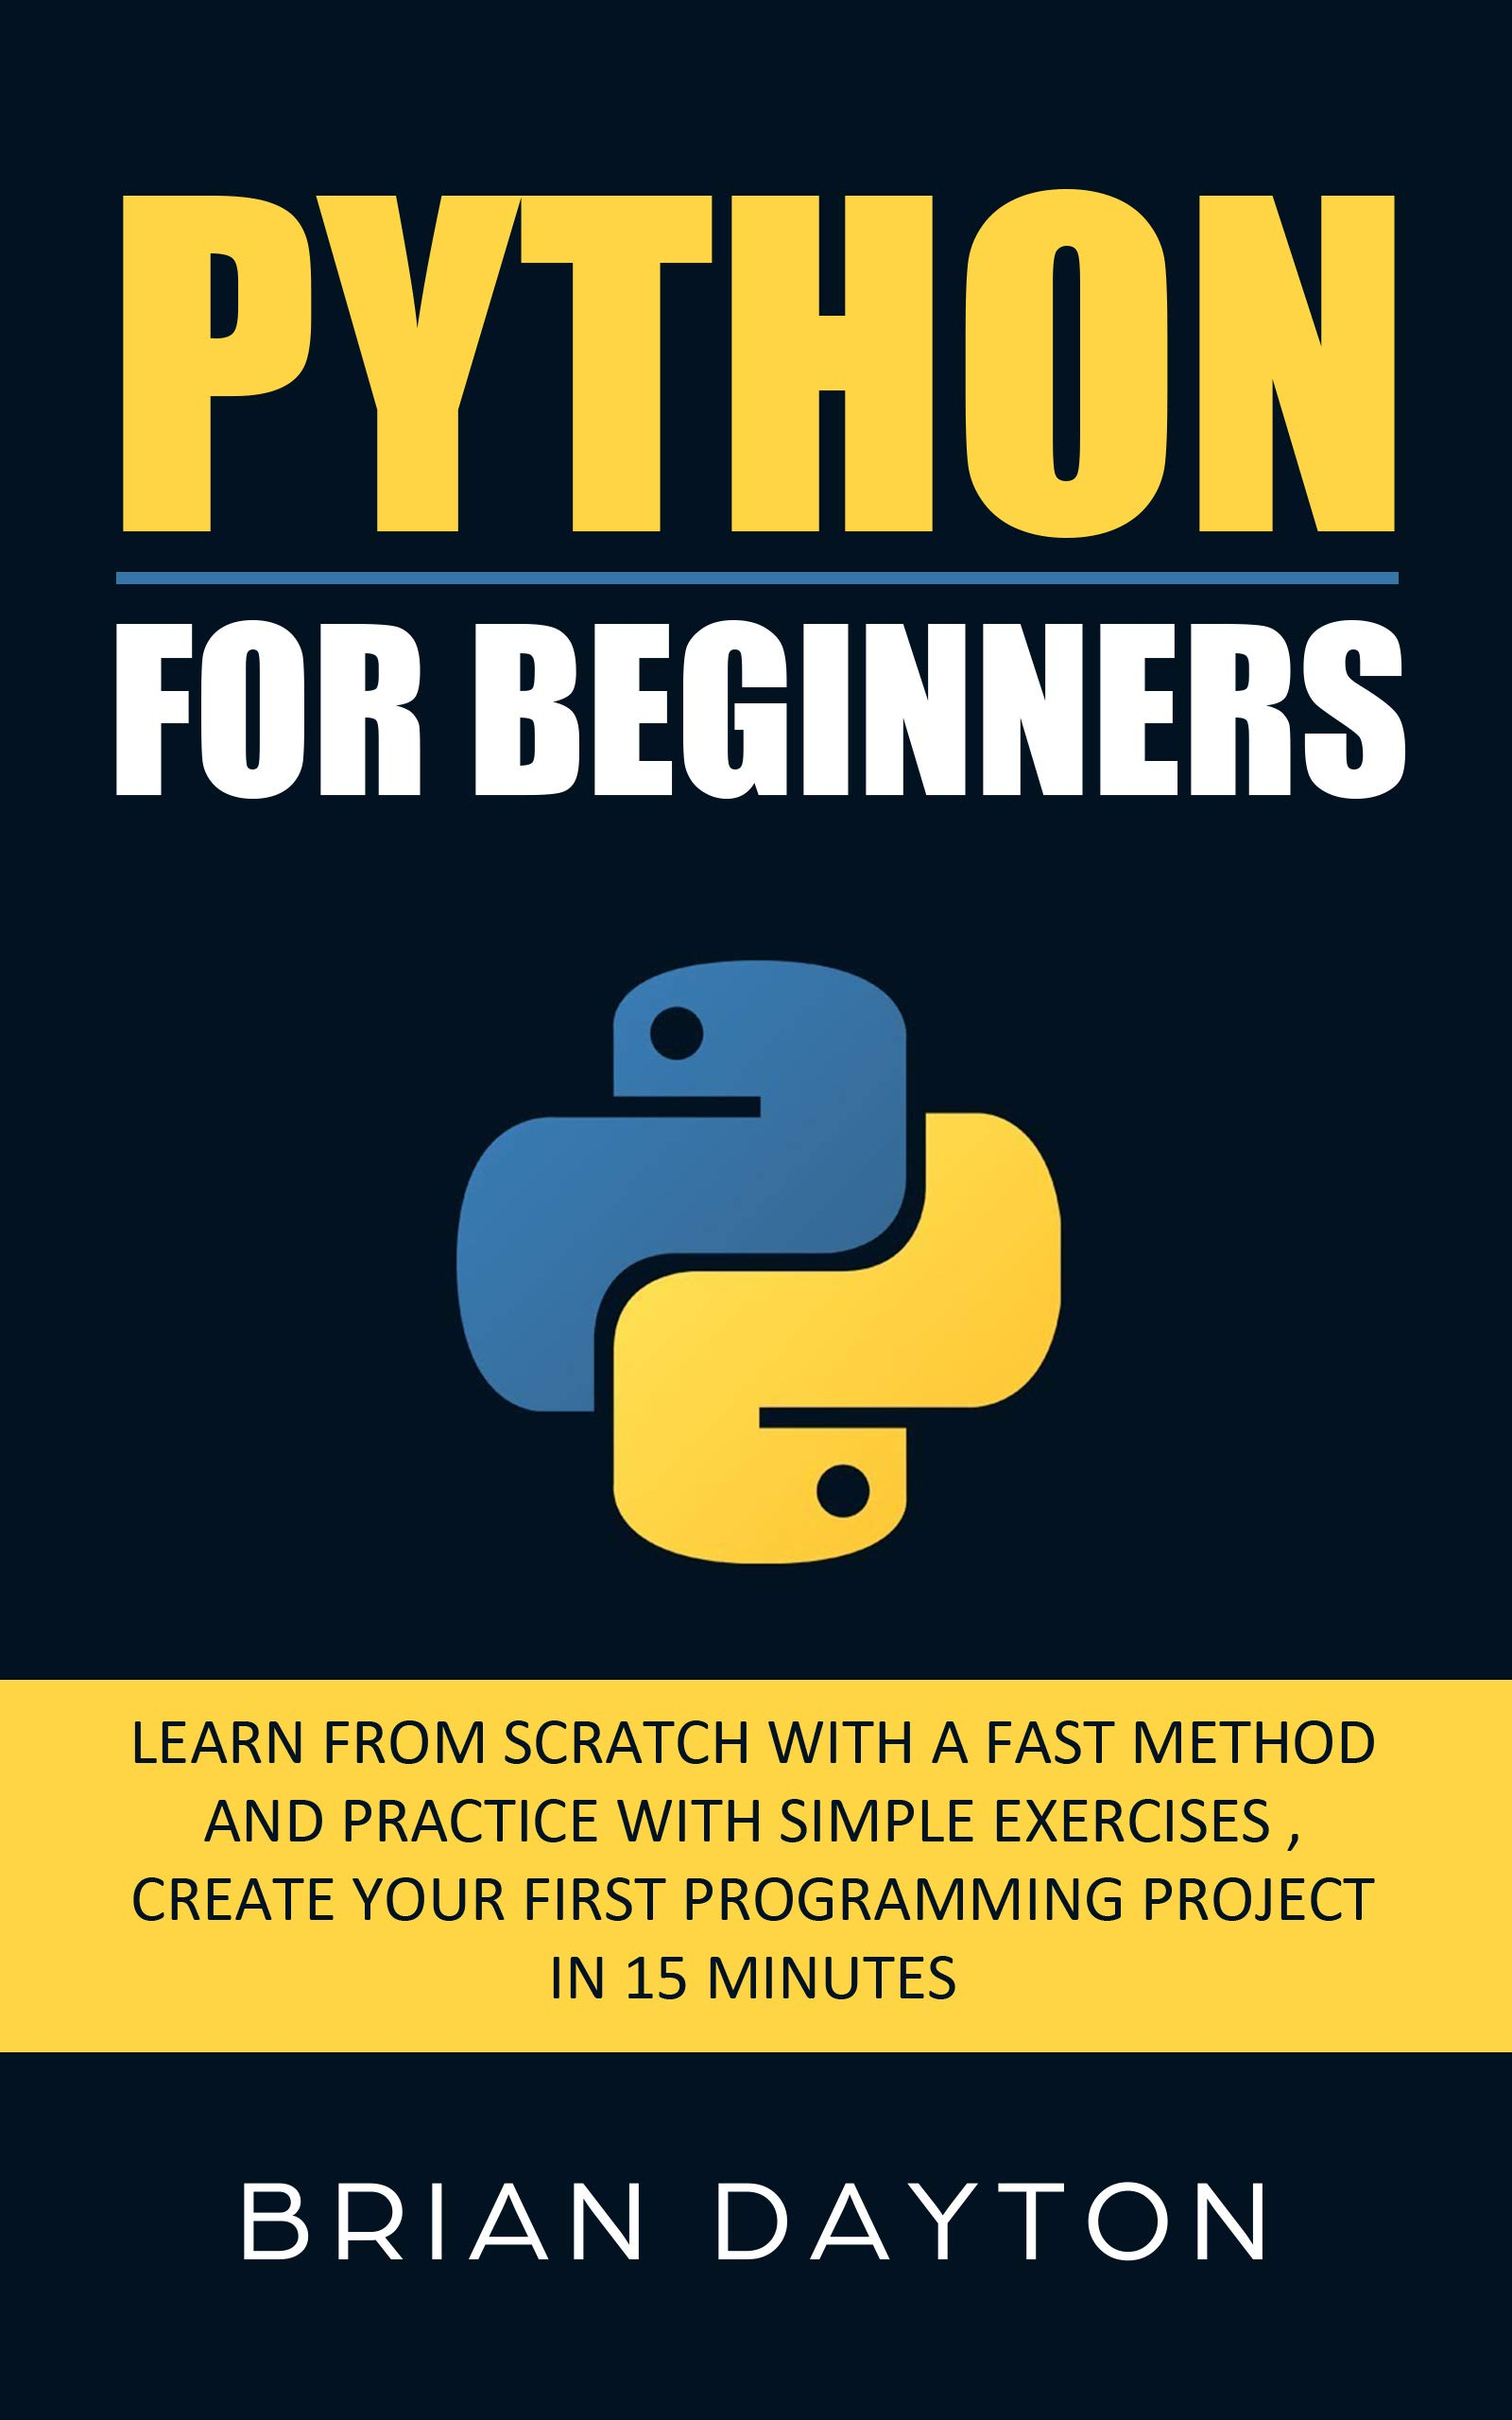 Python For Beginners: Learn From Scratch With a Fast Method and Practice With Simple Exercises; Create Your First Programming Project in 15 Minutes